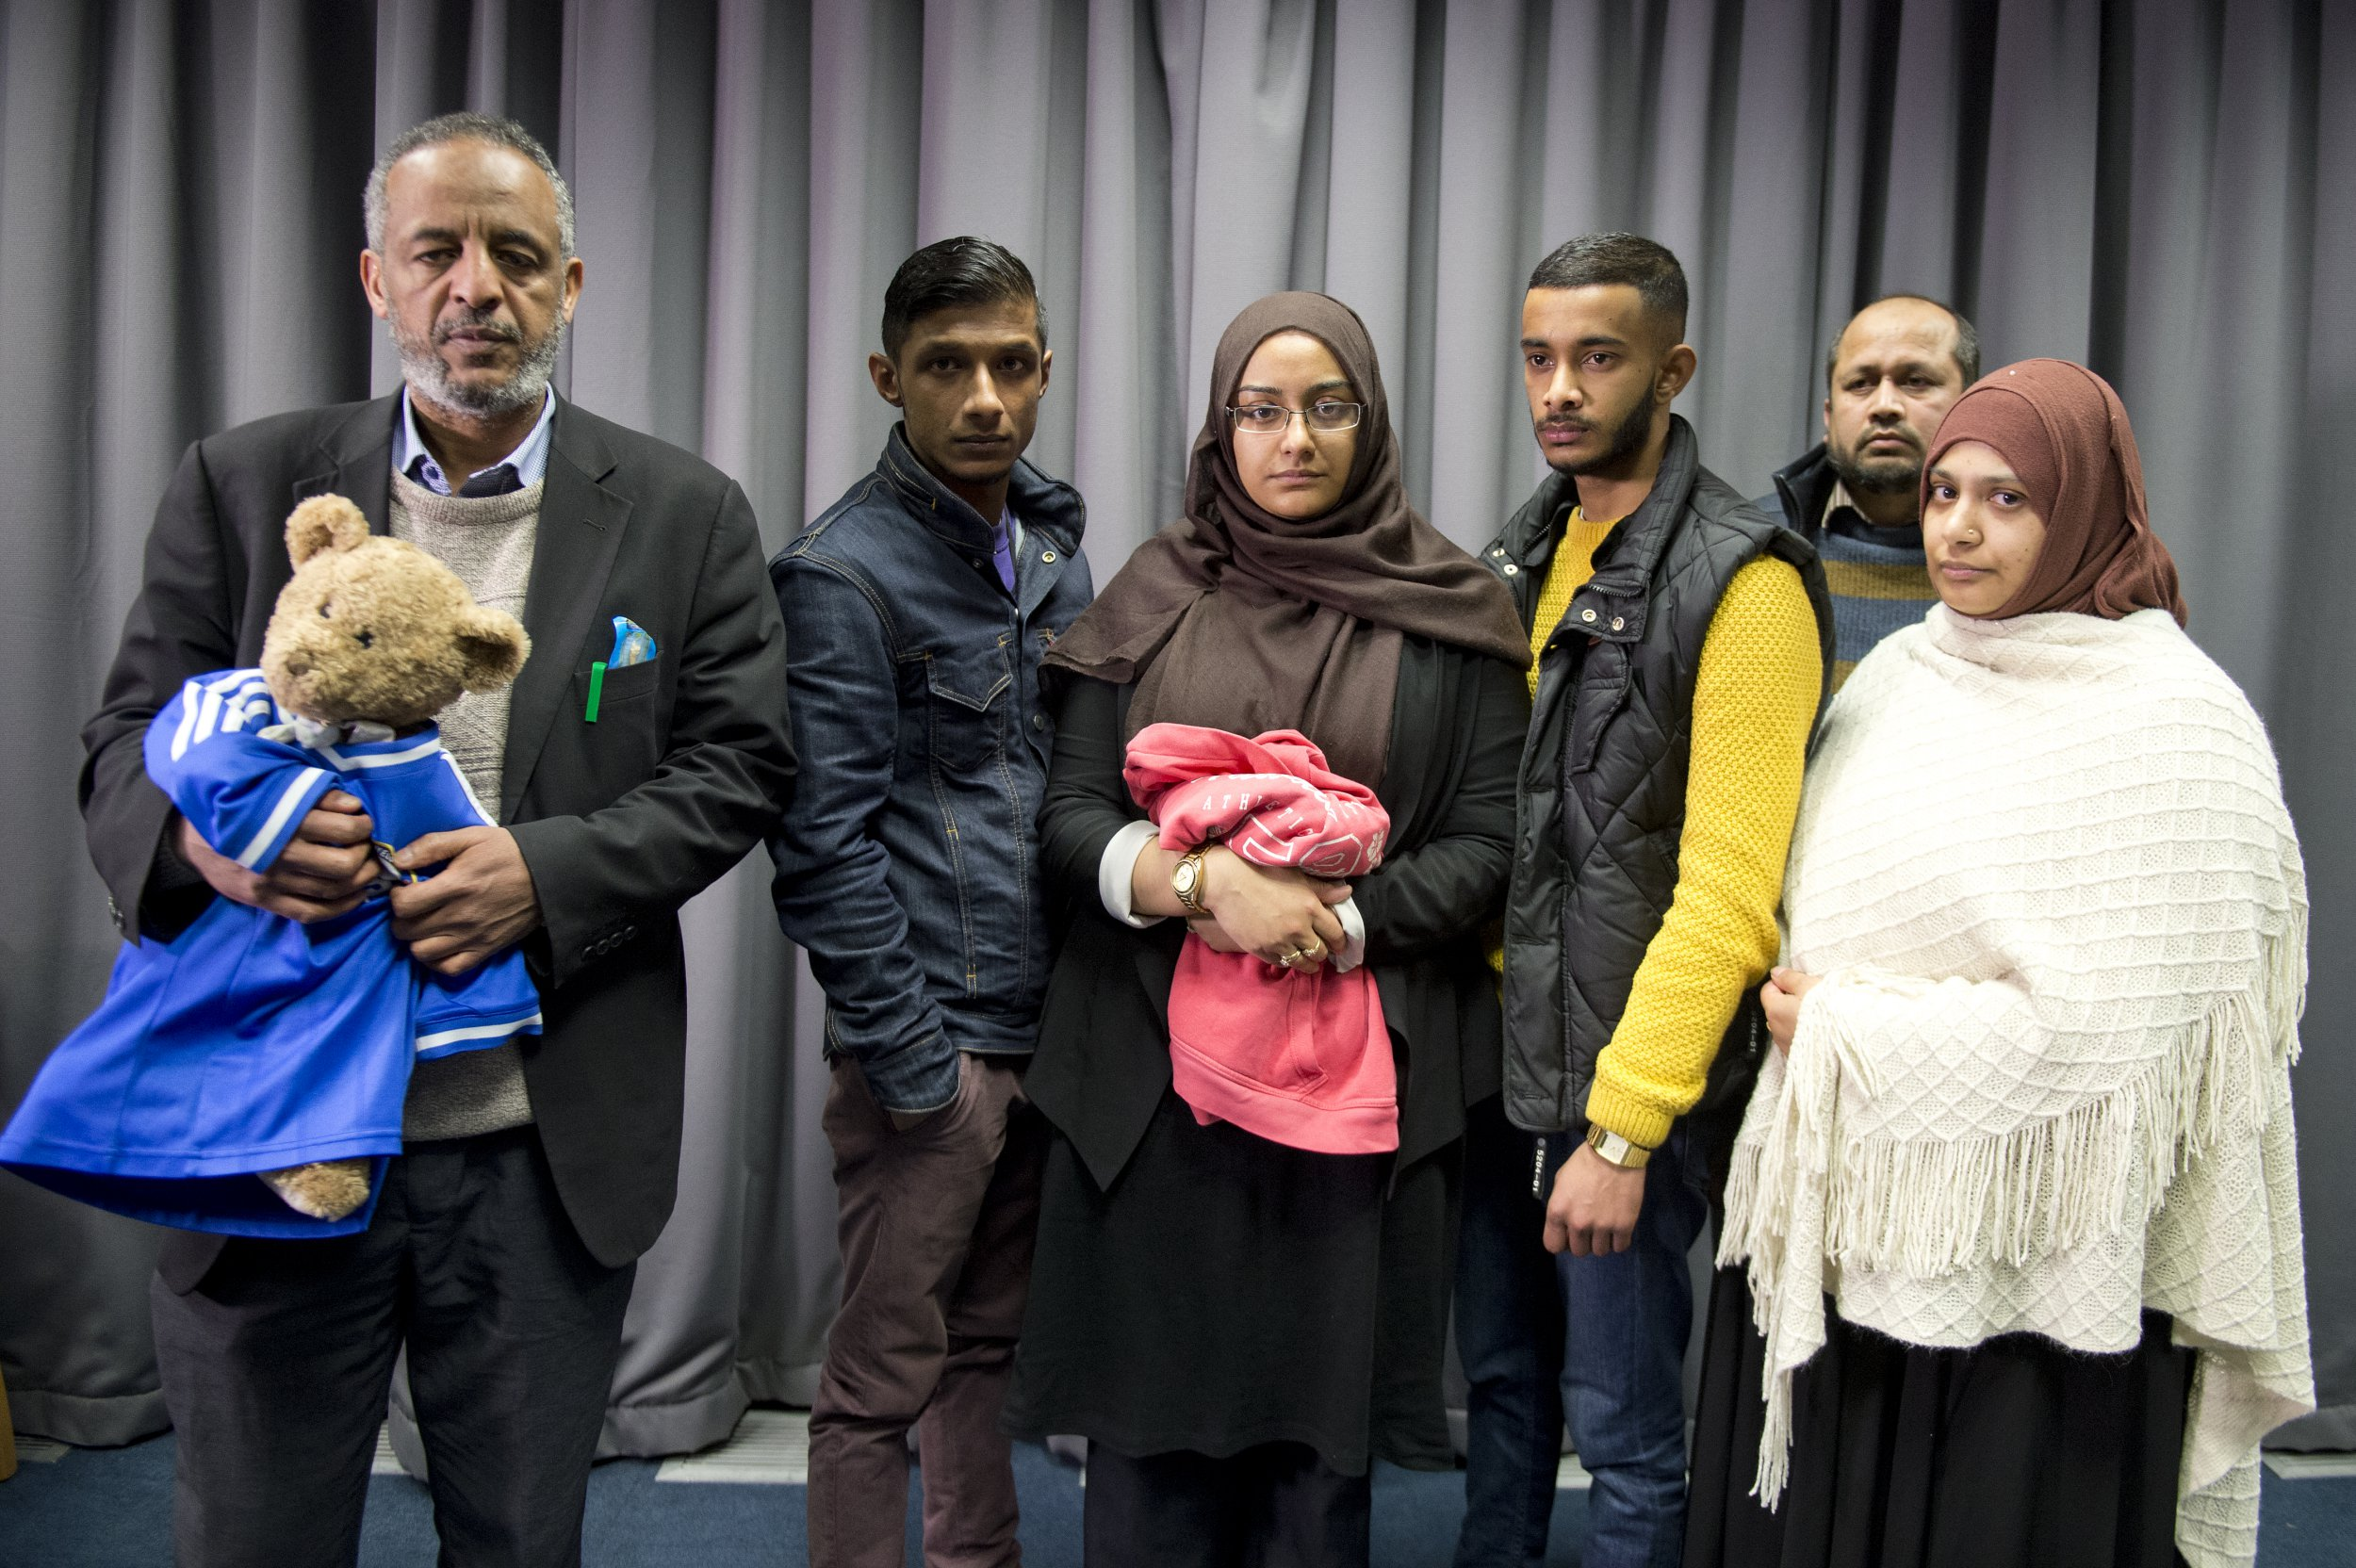 LONDON, ENGLAND - FEBRUARY 22: The famiiles of Amira Abase and Shamima Begum, the three missing schoolgirls believed to have fled to Syria to join Islamic State, pose after being interviewed by the media at New Scotland Yard, after pleading for them to return home, on February 22, 2015 in London, England. Police are urgently trying to trace Shamima Begum, 15, Kadiza Sultana, 16, and 15-year-old Amira Abase after they flew to Istanbul in Turkey from Gatwick Airport on Tuesday. (Photo by Laura Lean - WPA Pool/Getty Images)